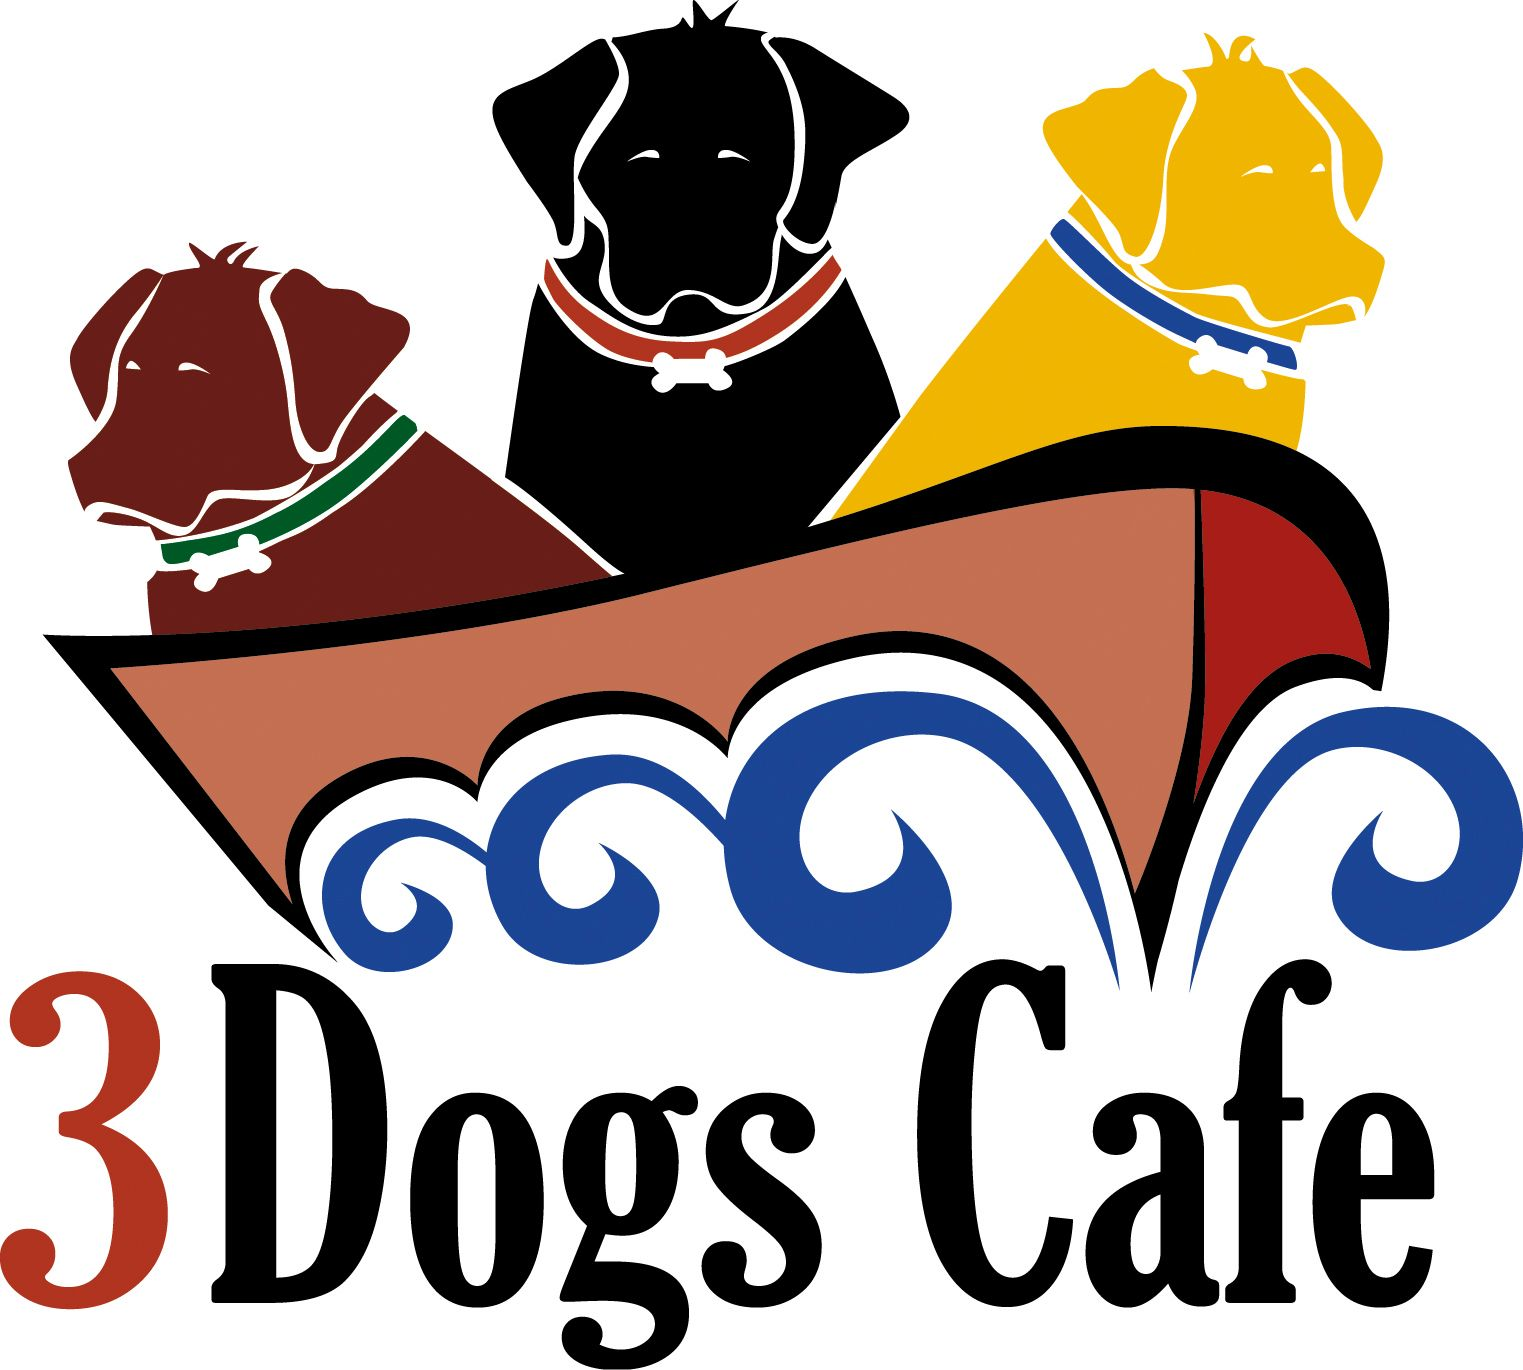 Our Client Three Dogs Cafe Came To Us Wanting A Logo That